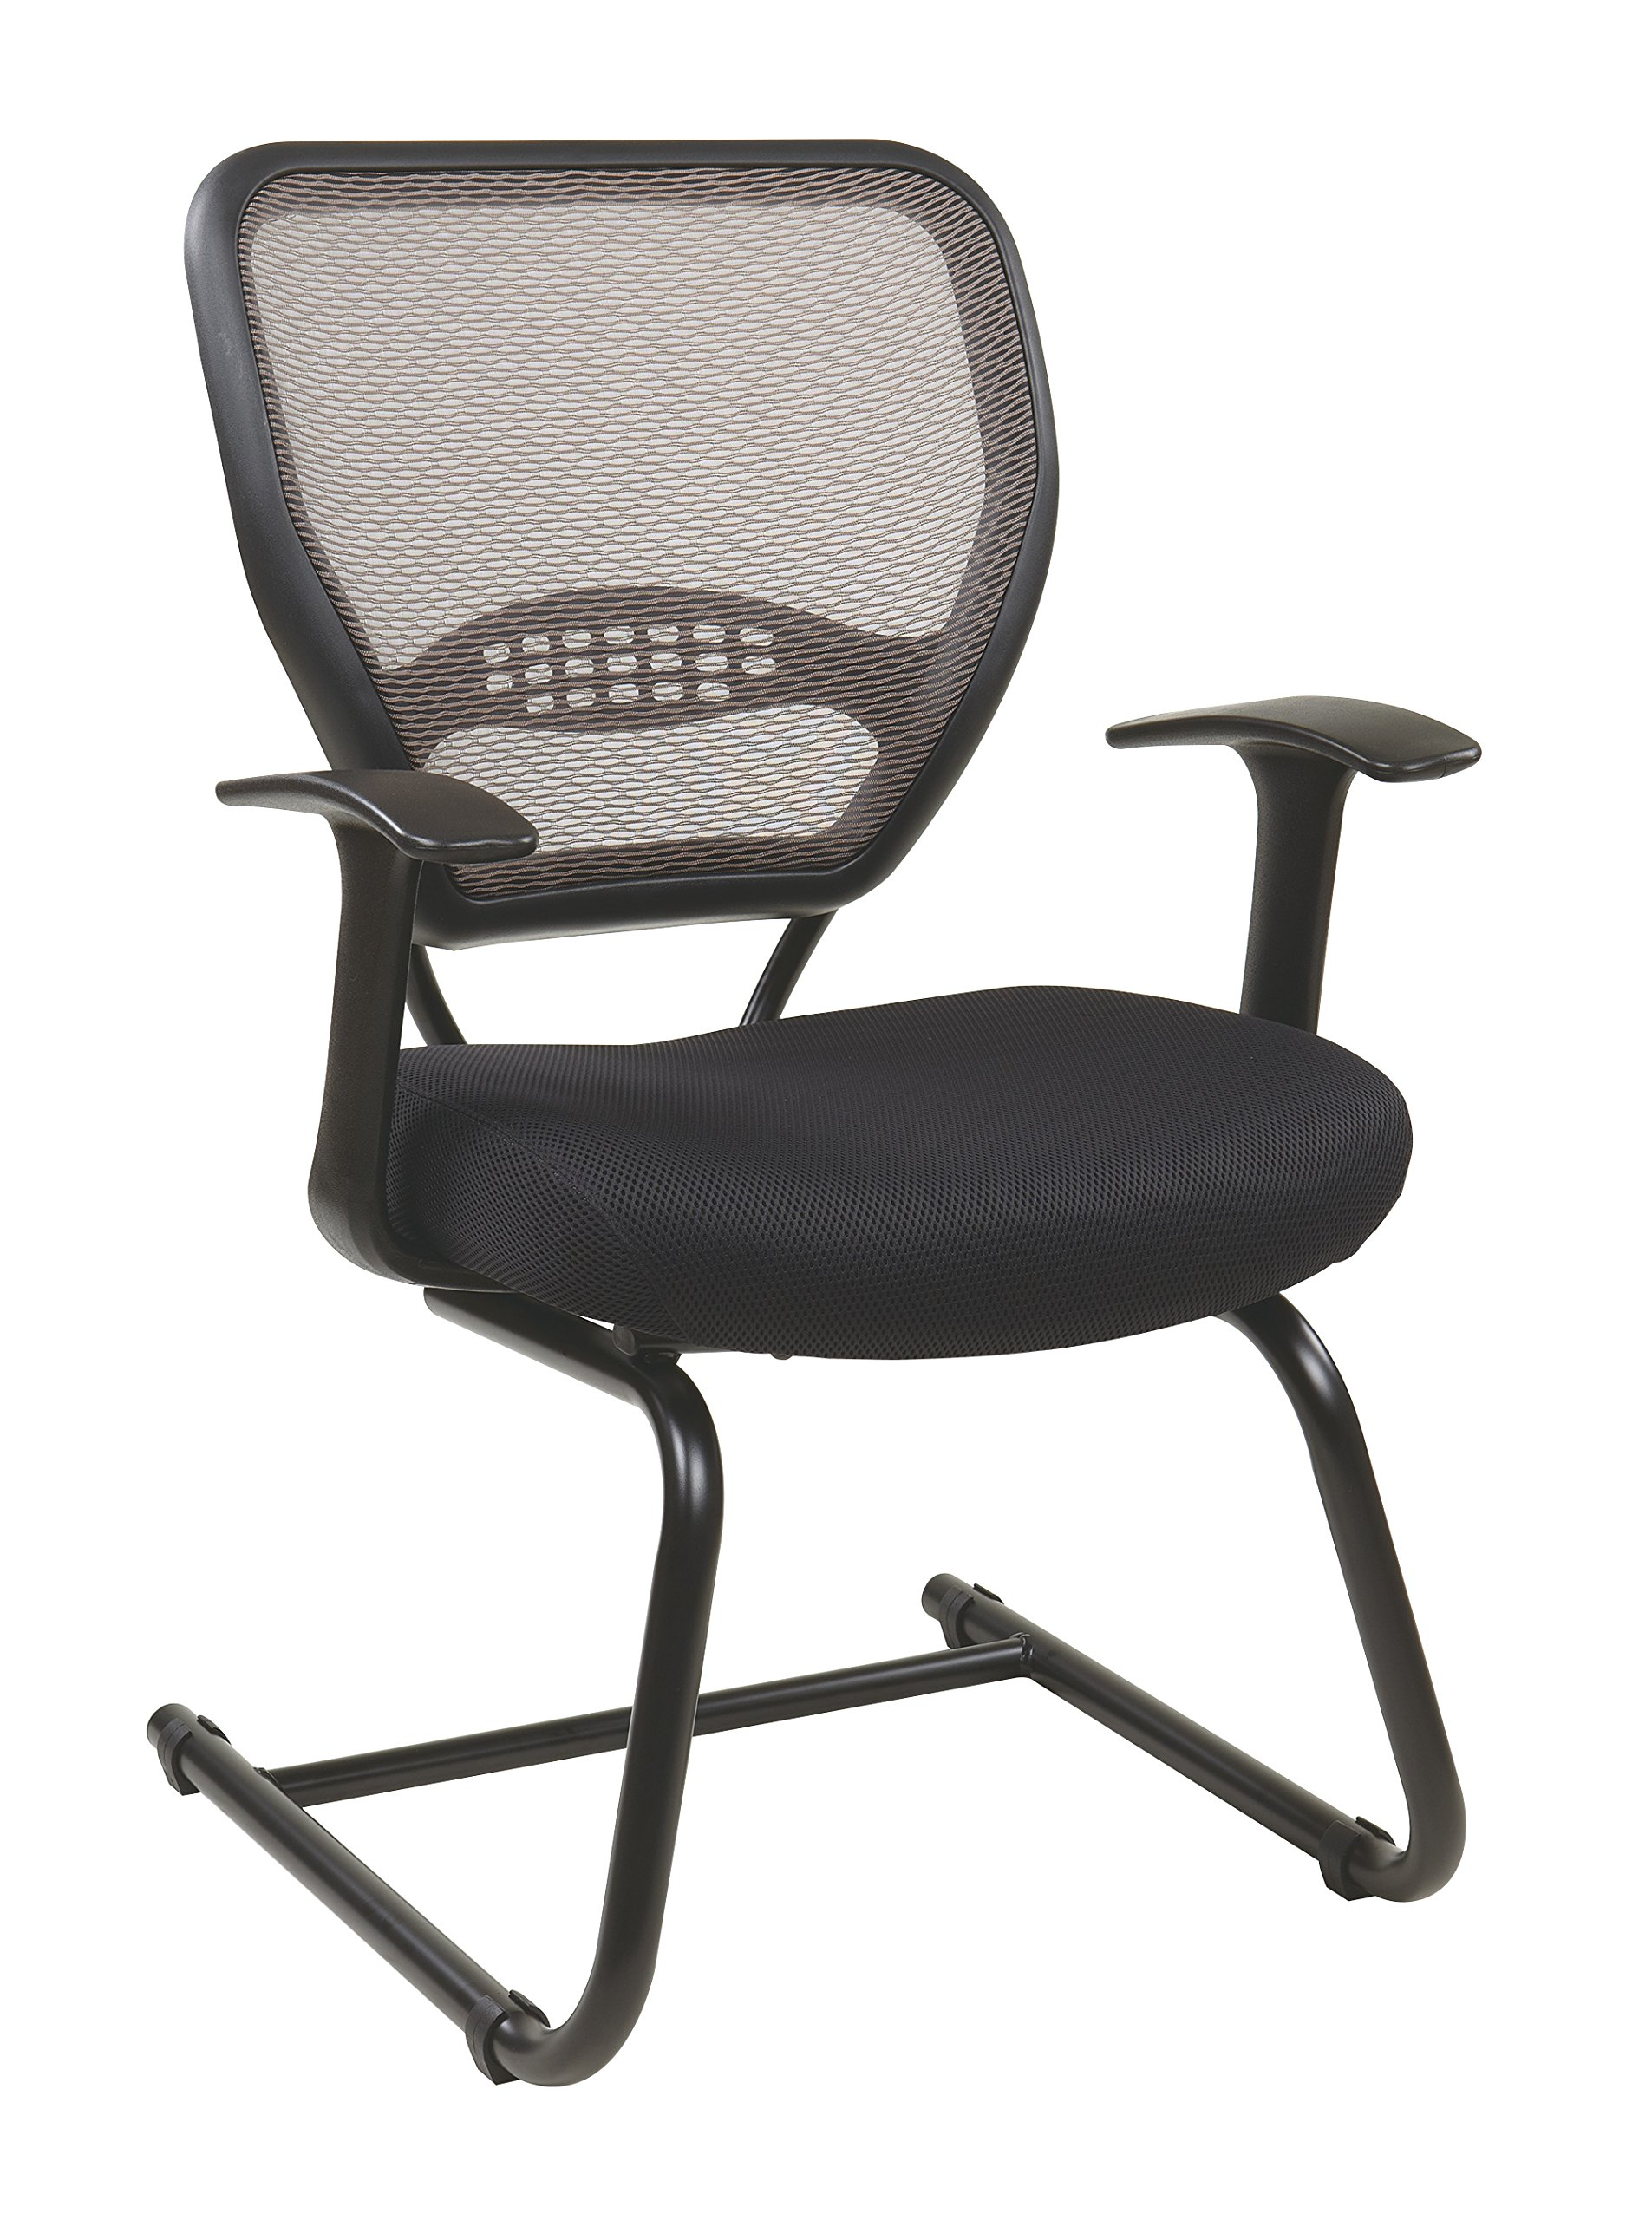 SPACE Seating AirGrid Latte Back with Padded Black Mesh Seat, Fixed Arms, Lumbar Support and Sled Base Visitors Chair by Space Seating